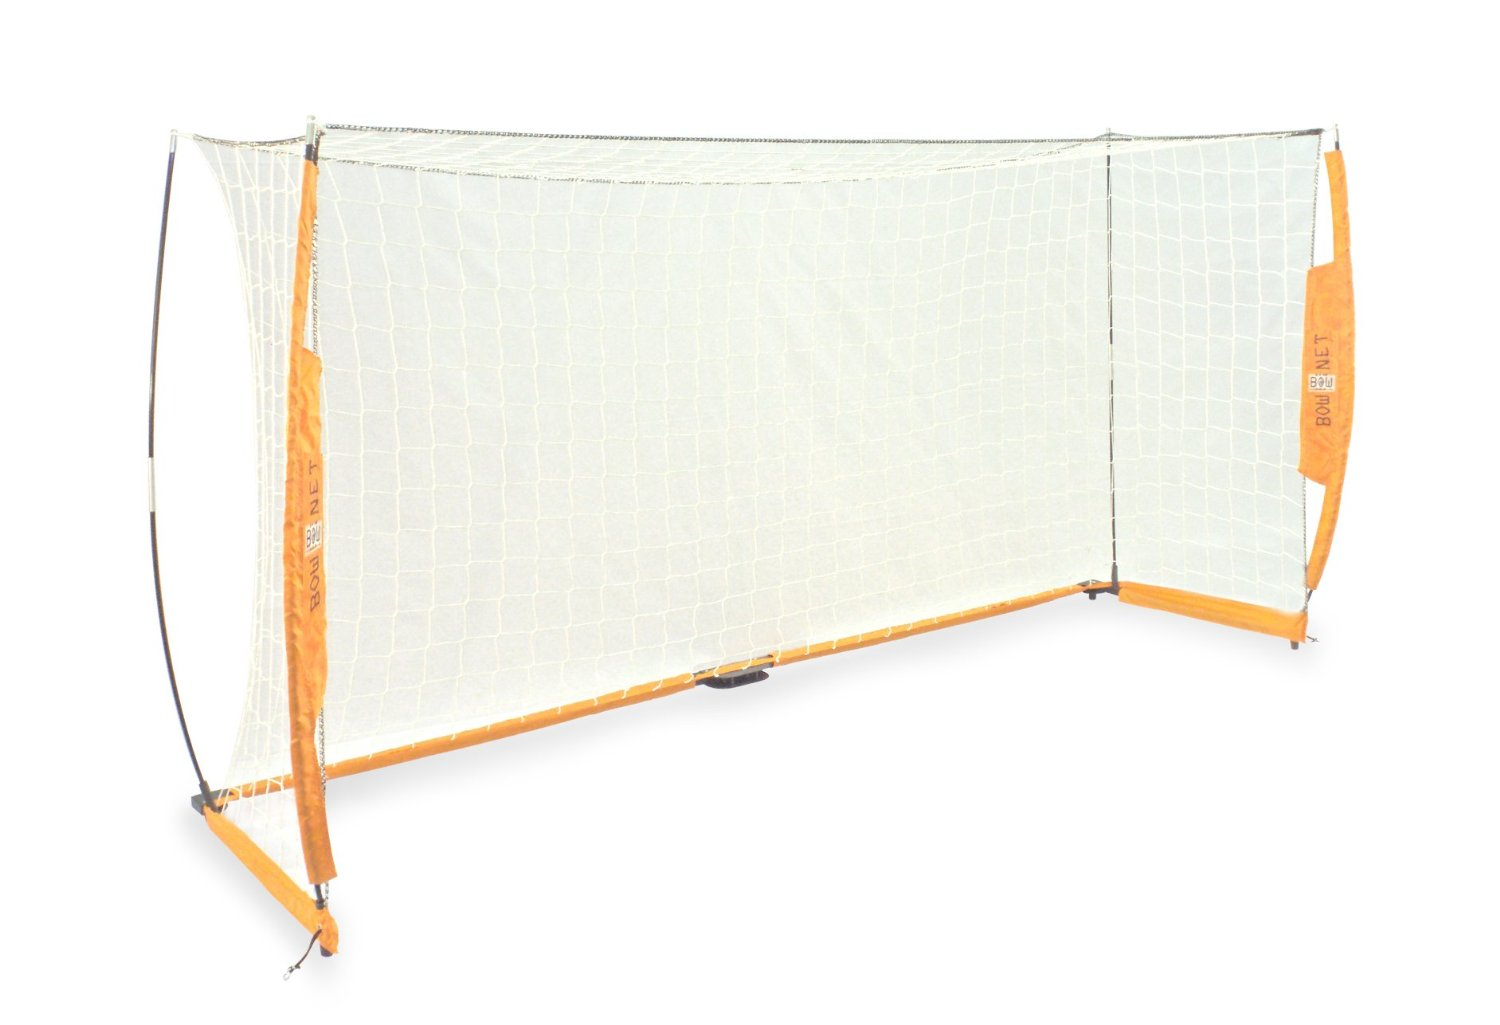 1500x1025 7 Best Portable Soccer Goals On The Market (2018 Update)